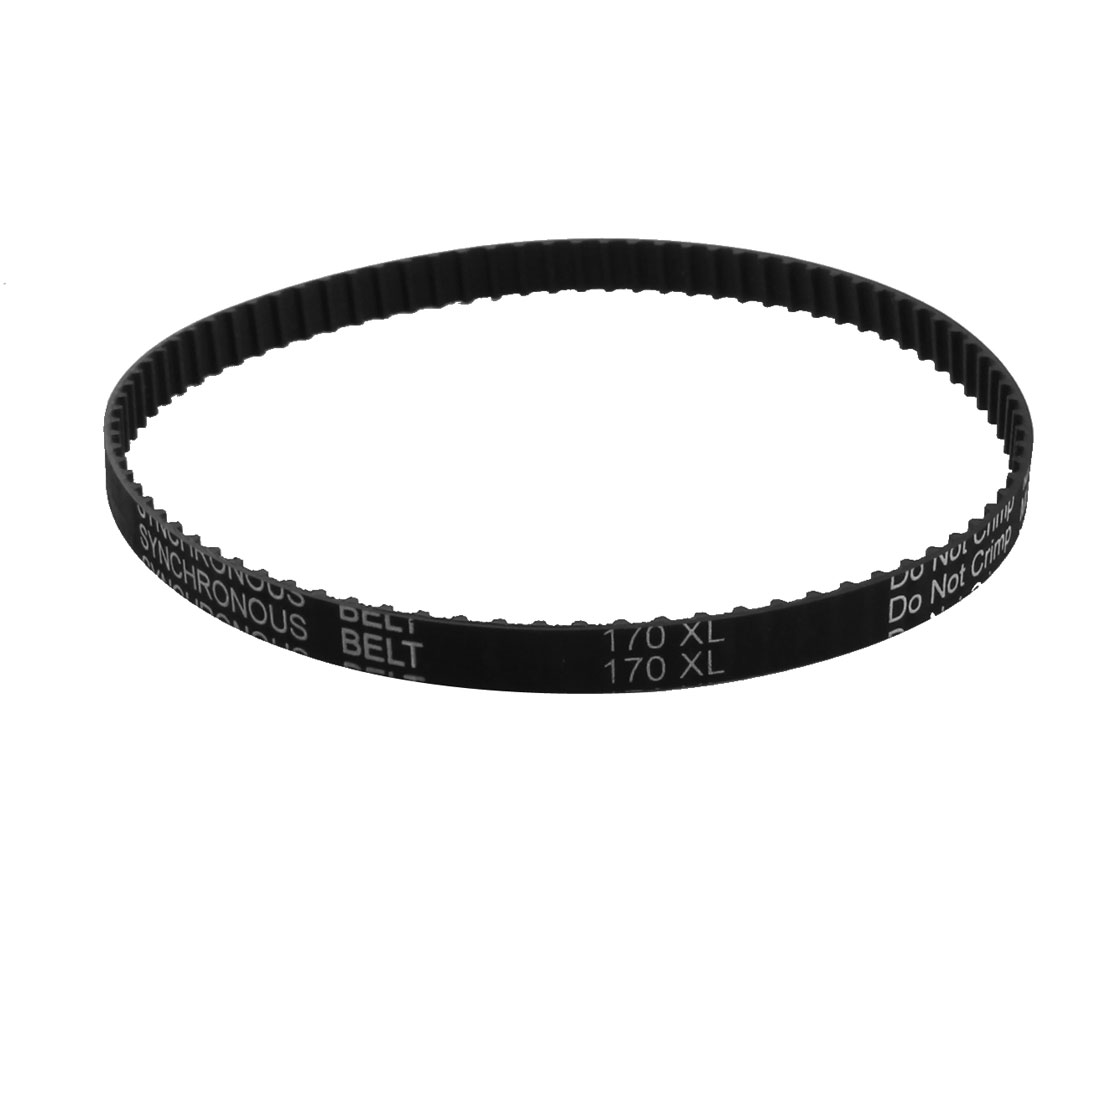 "XL-170 17"" Girth 5.08mm Pitch 85-Teeth 9.5mm Width Black Rubber Single Side Synchronous Timing Belt"